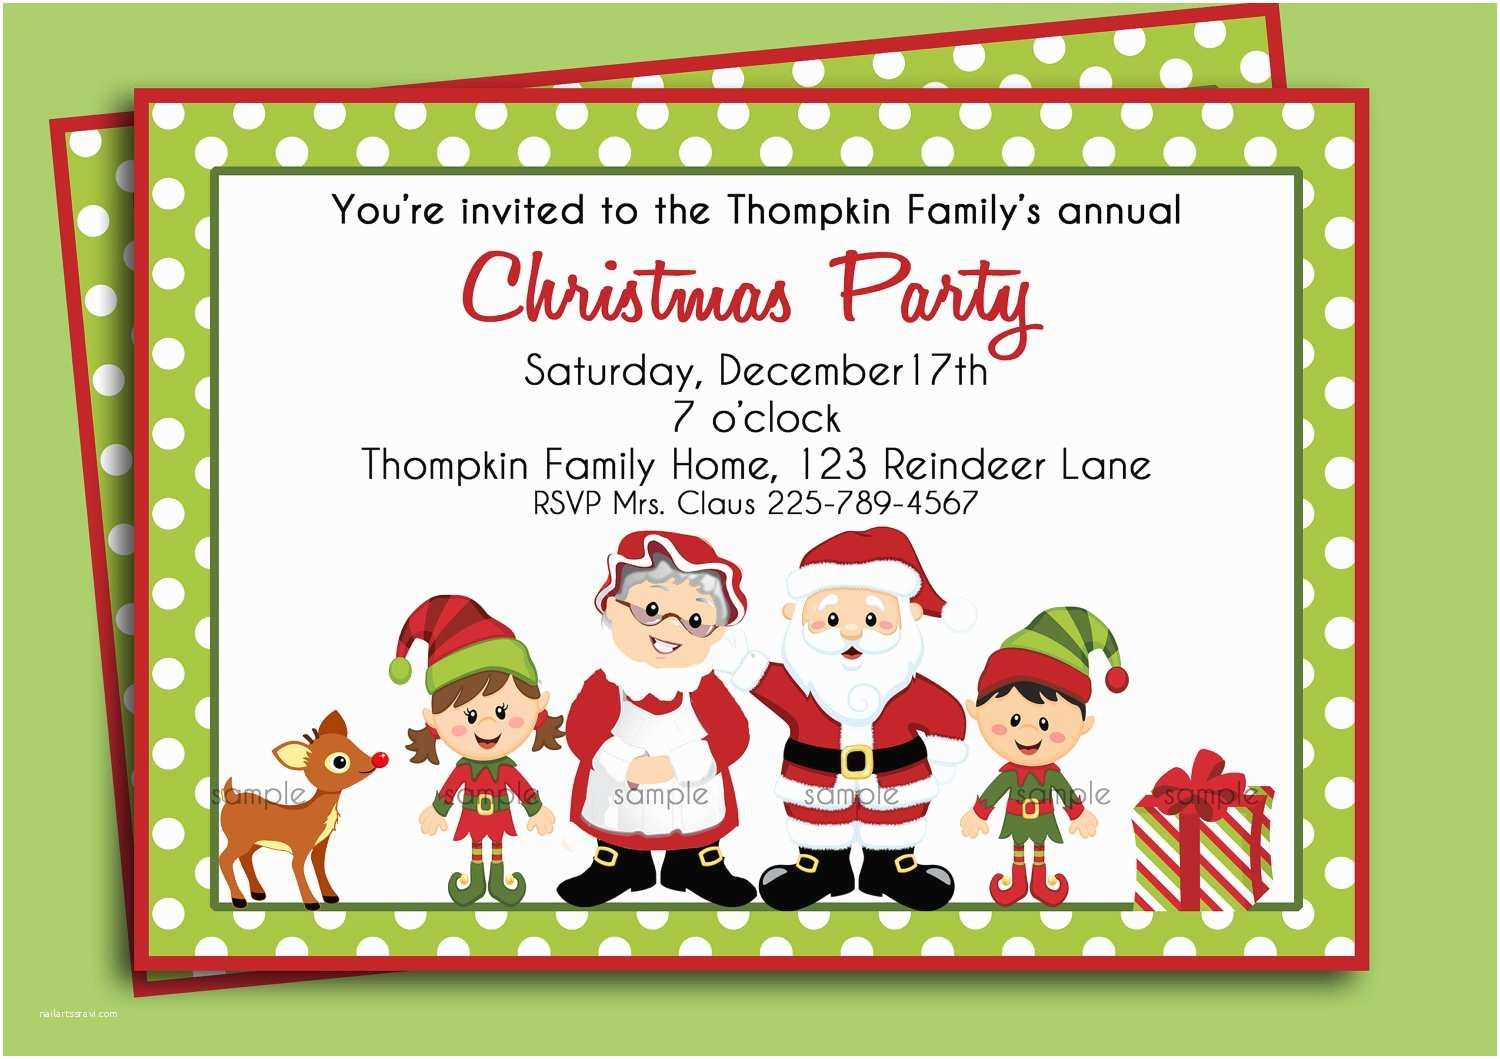 Christmas Party Invitation Ideas Christmas Party Flyer Clipart 19